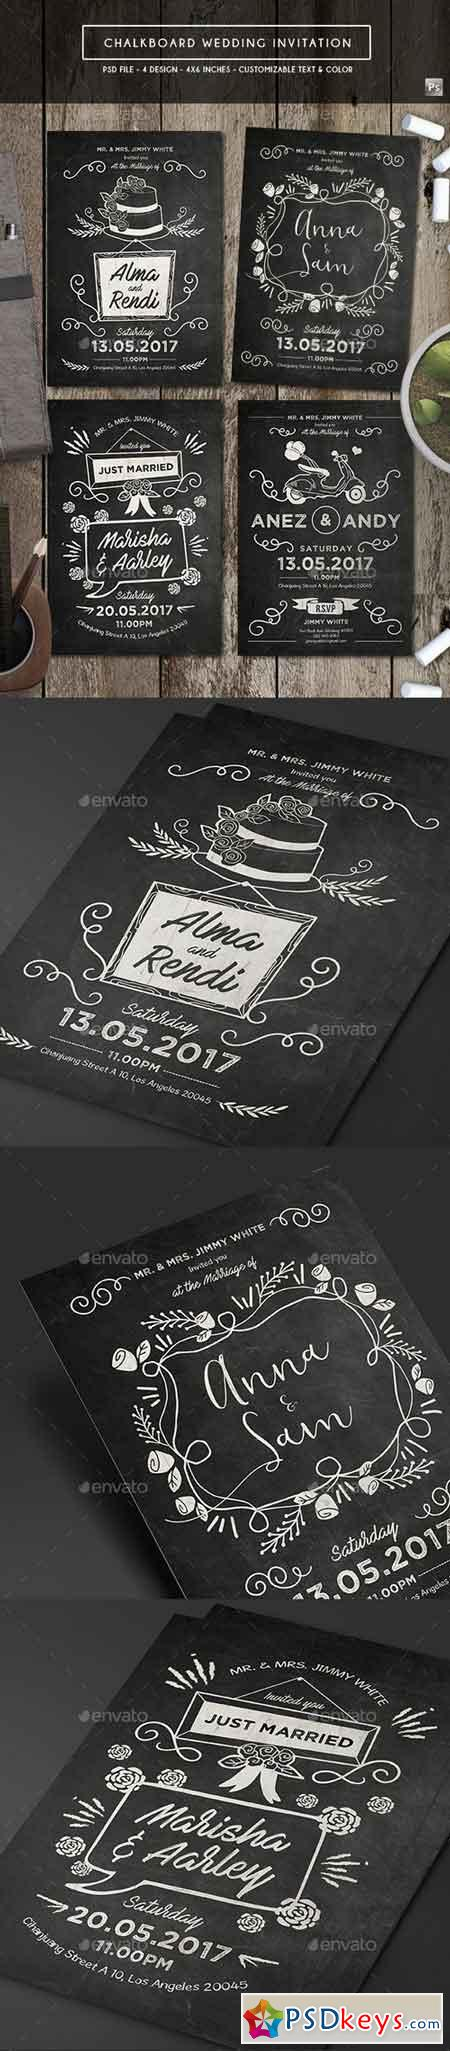 Chalkboard Invitation 19289861